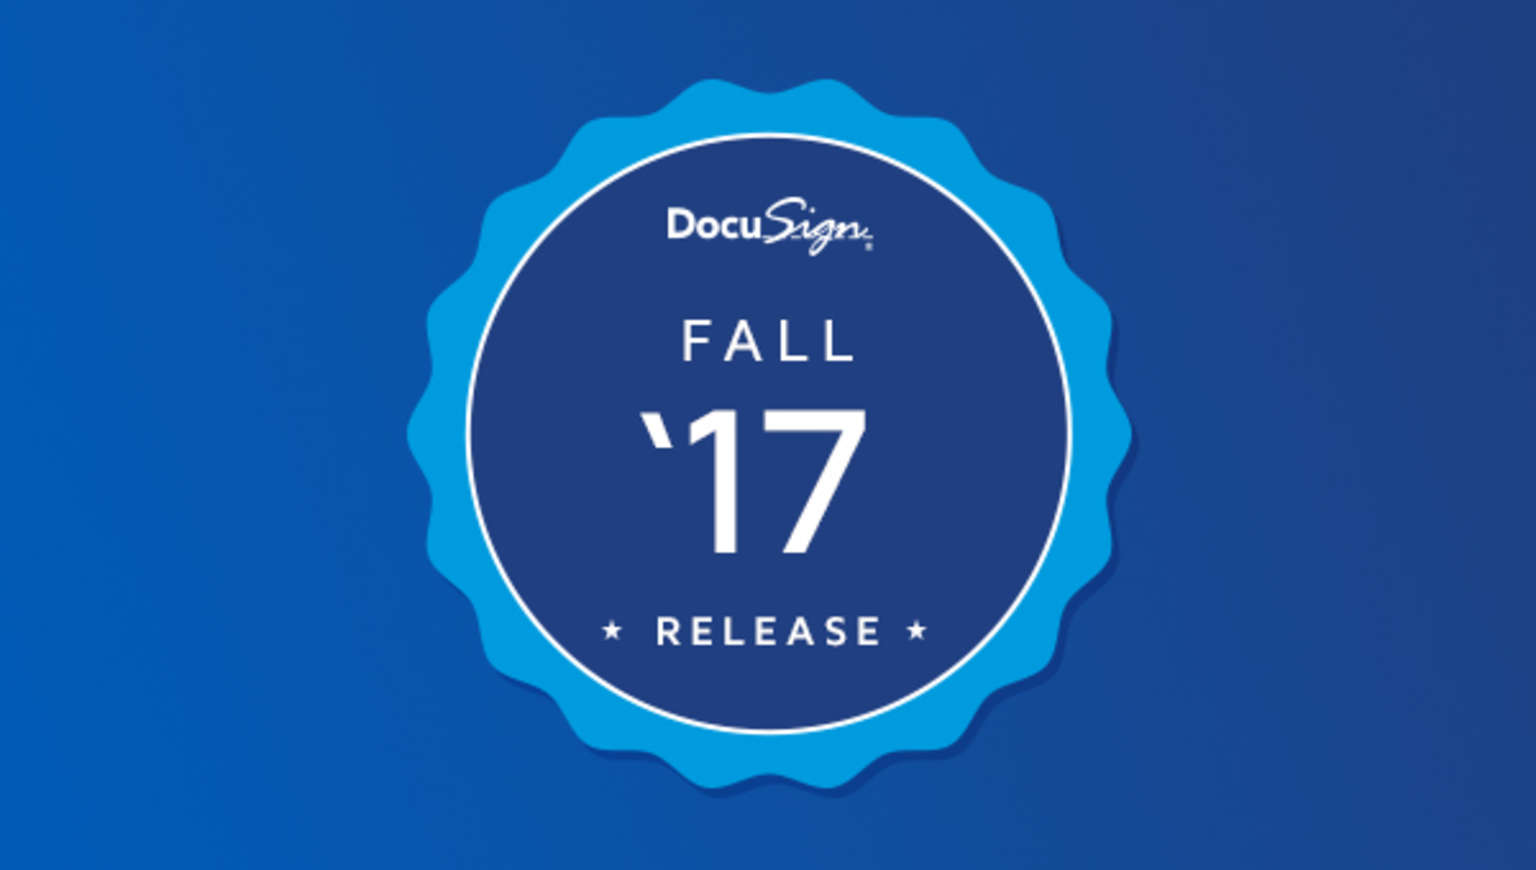 New DocuSign release includes updated features